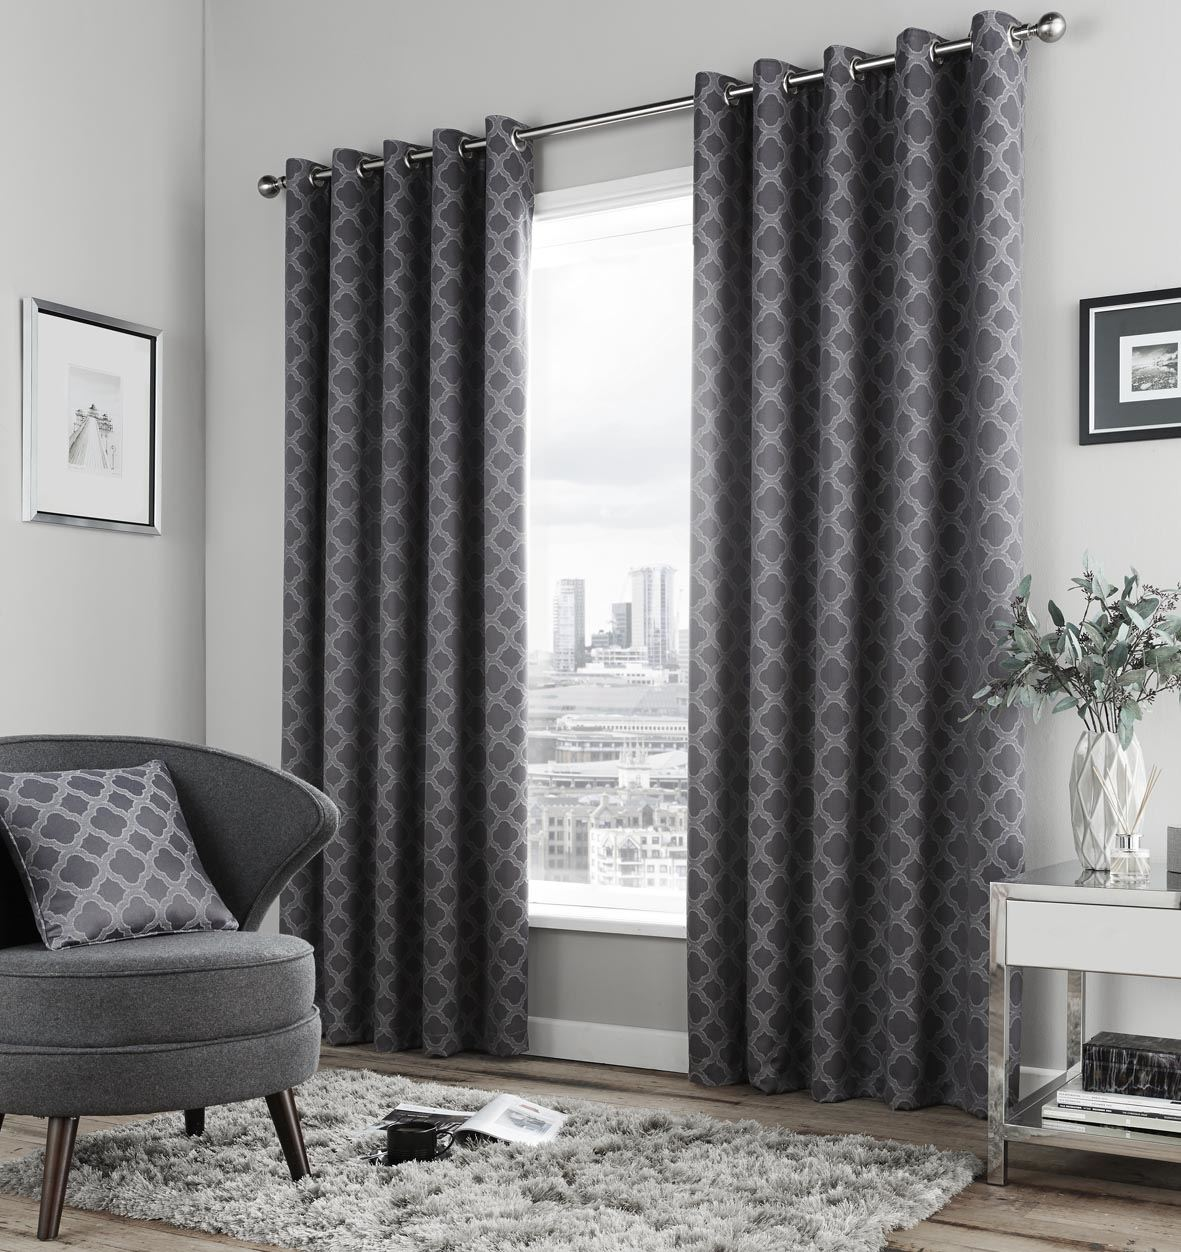 Geometric charcoal grey fully lined ring top curtains 6 for Living room curtains 90x90